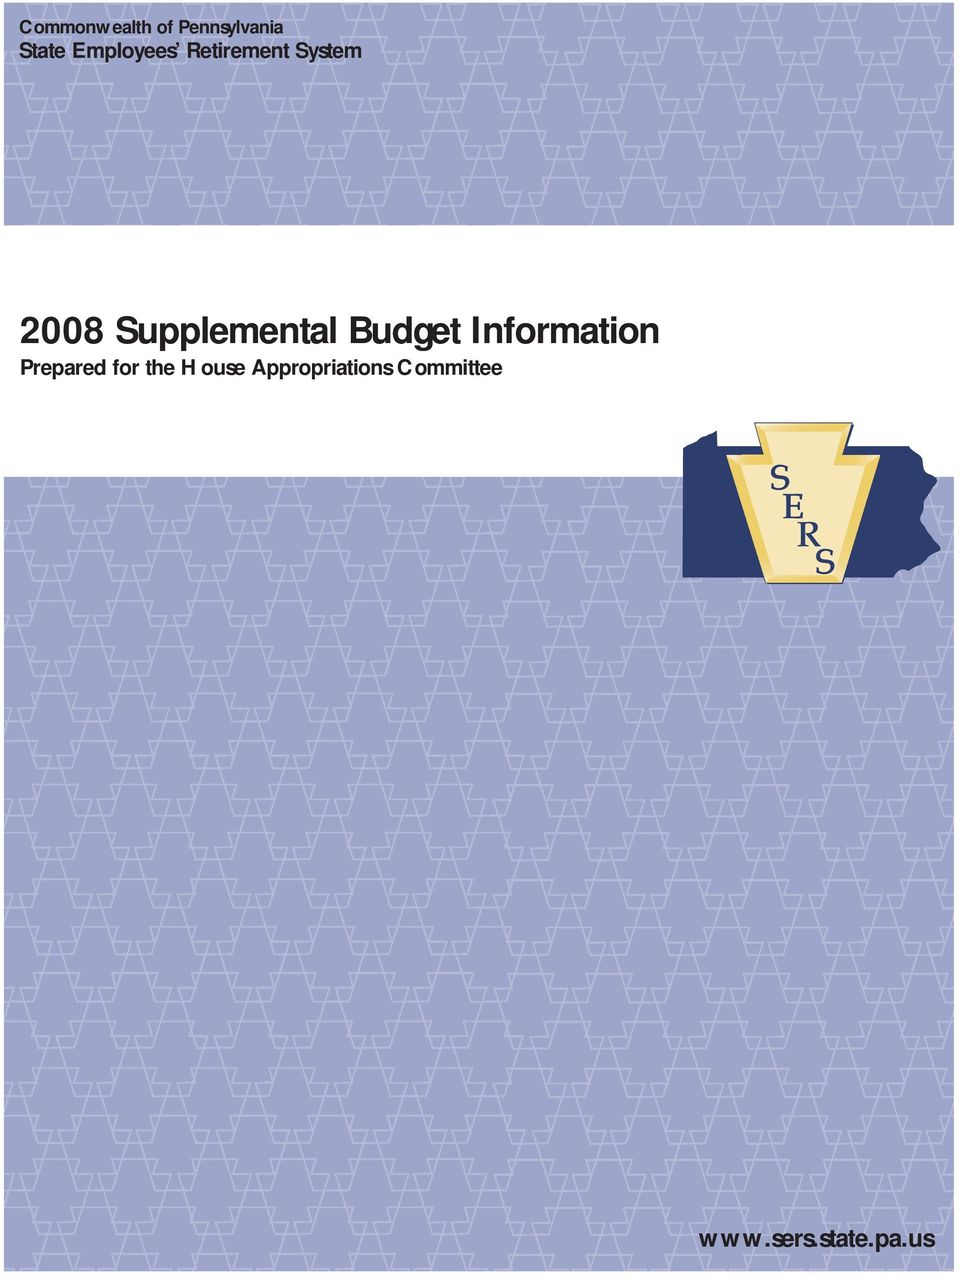 Supplemental Budget Information Prepared